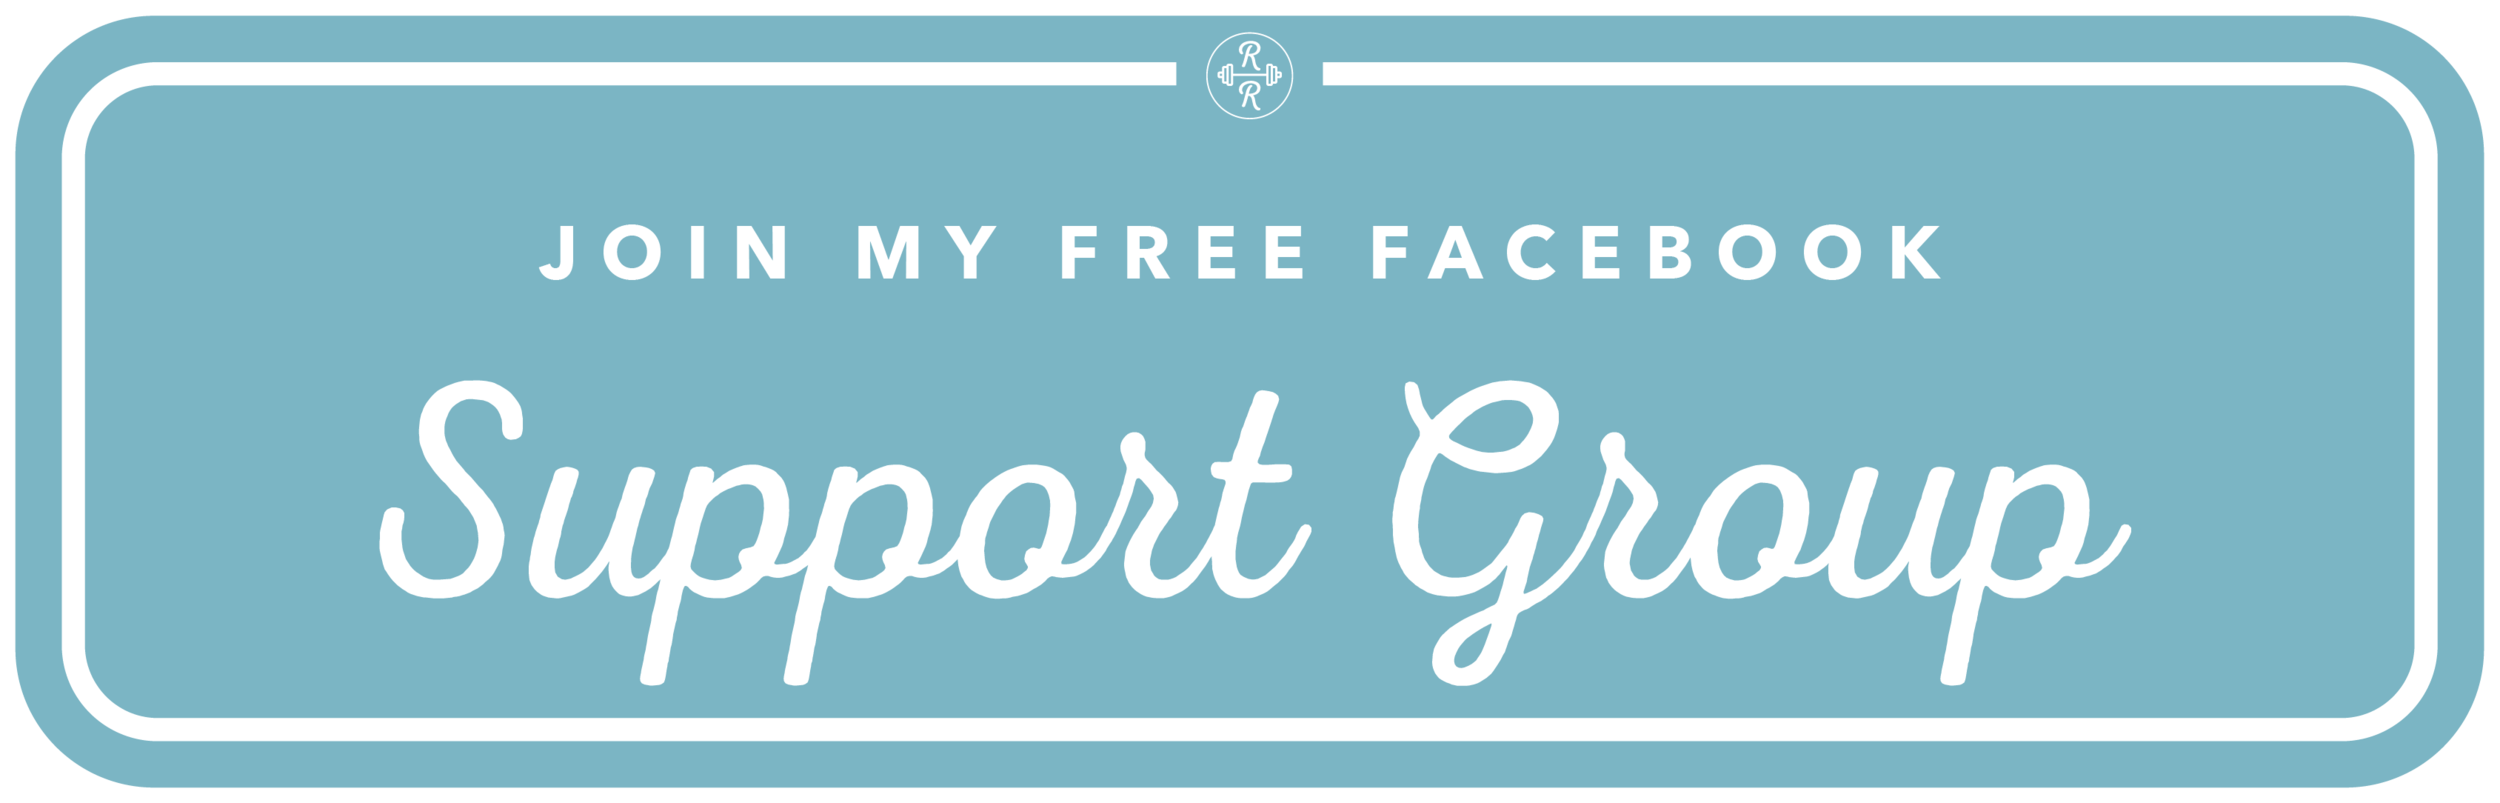 Join My Free Facebook Support Group